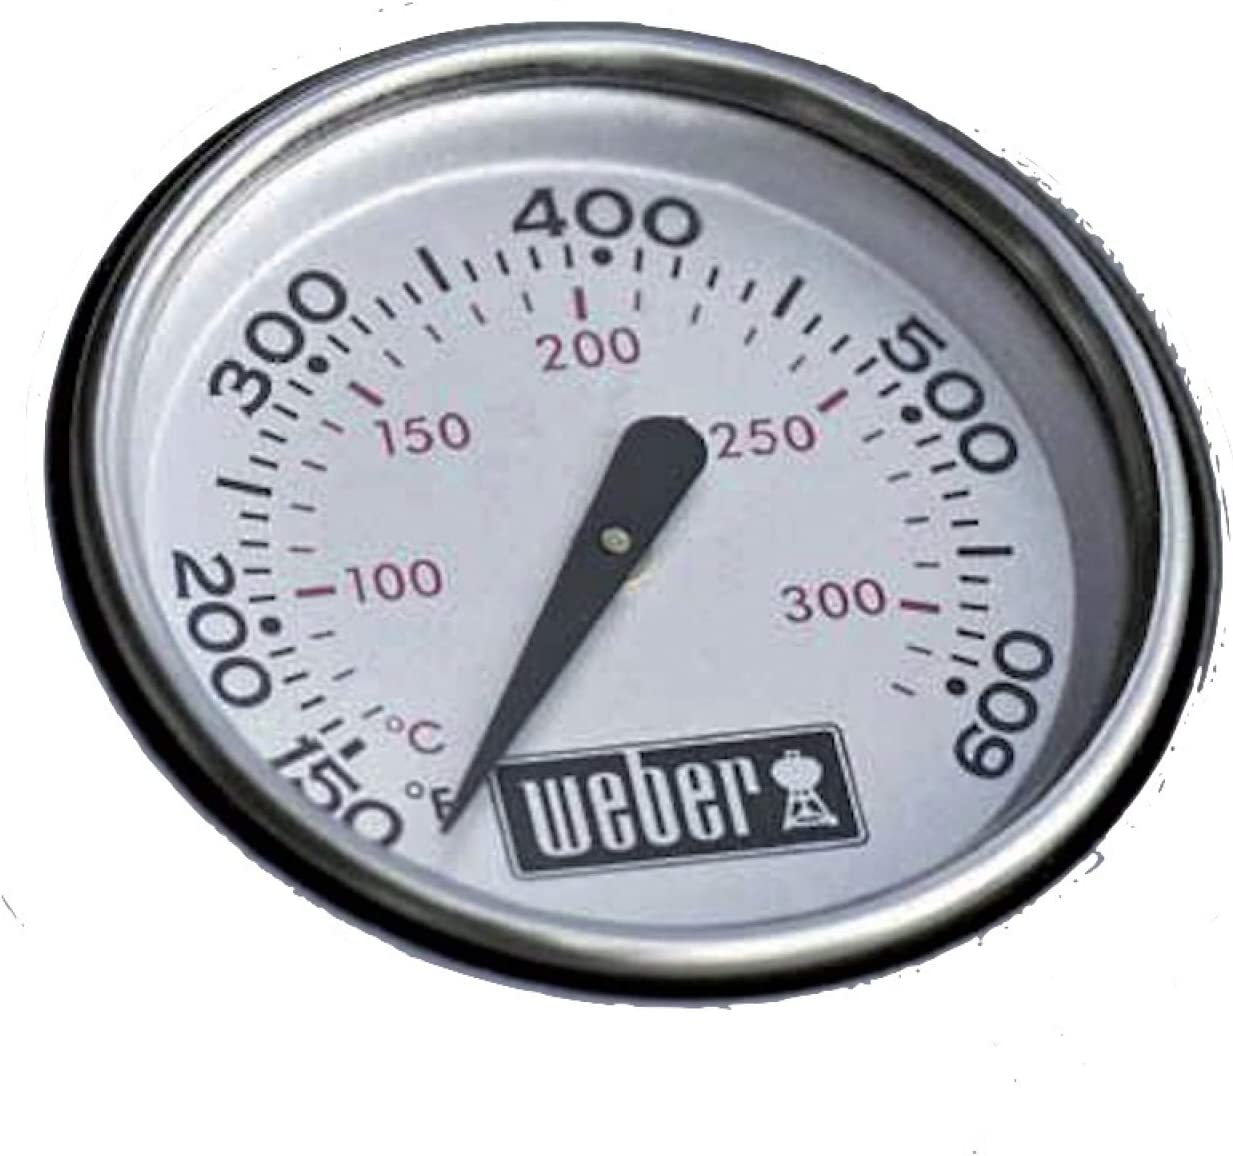 Weber Lid Thermometer For Charcoal Grills All Models From 2010 And Spirit Amazon Co Uk Garden Outdoors Gauge your steak's doneness without cutting into your precious piece of meat. weber lid thermometer for charcoal grills all models from 2010 and spirit